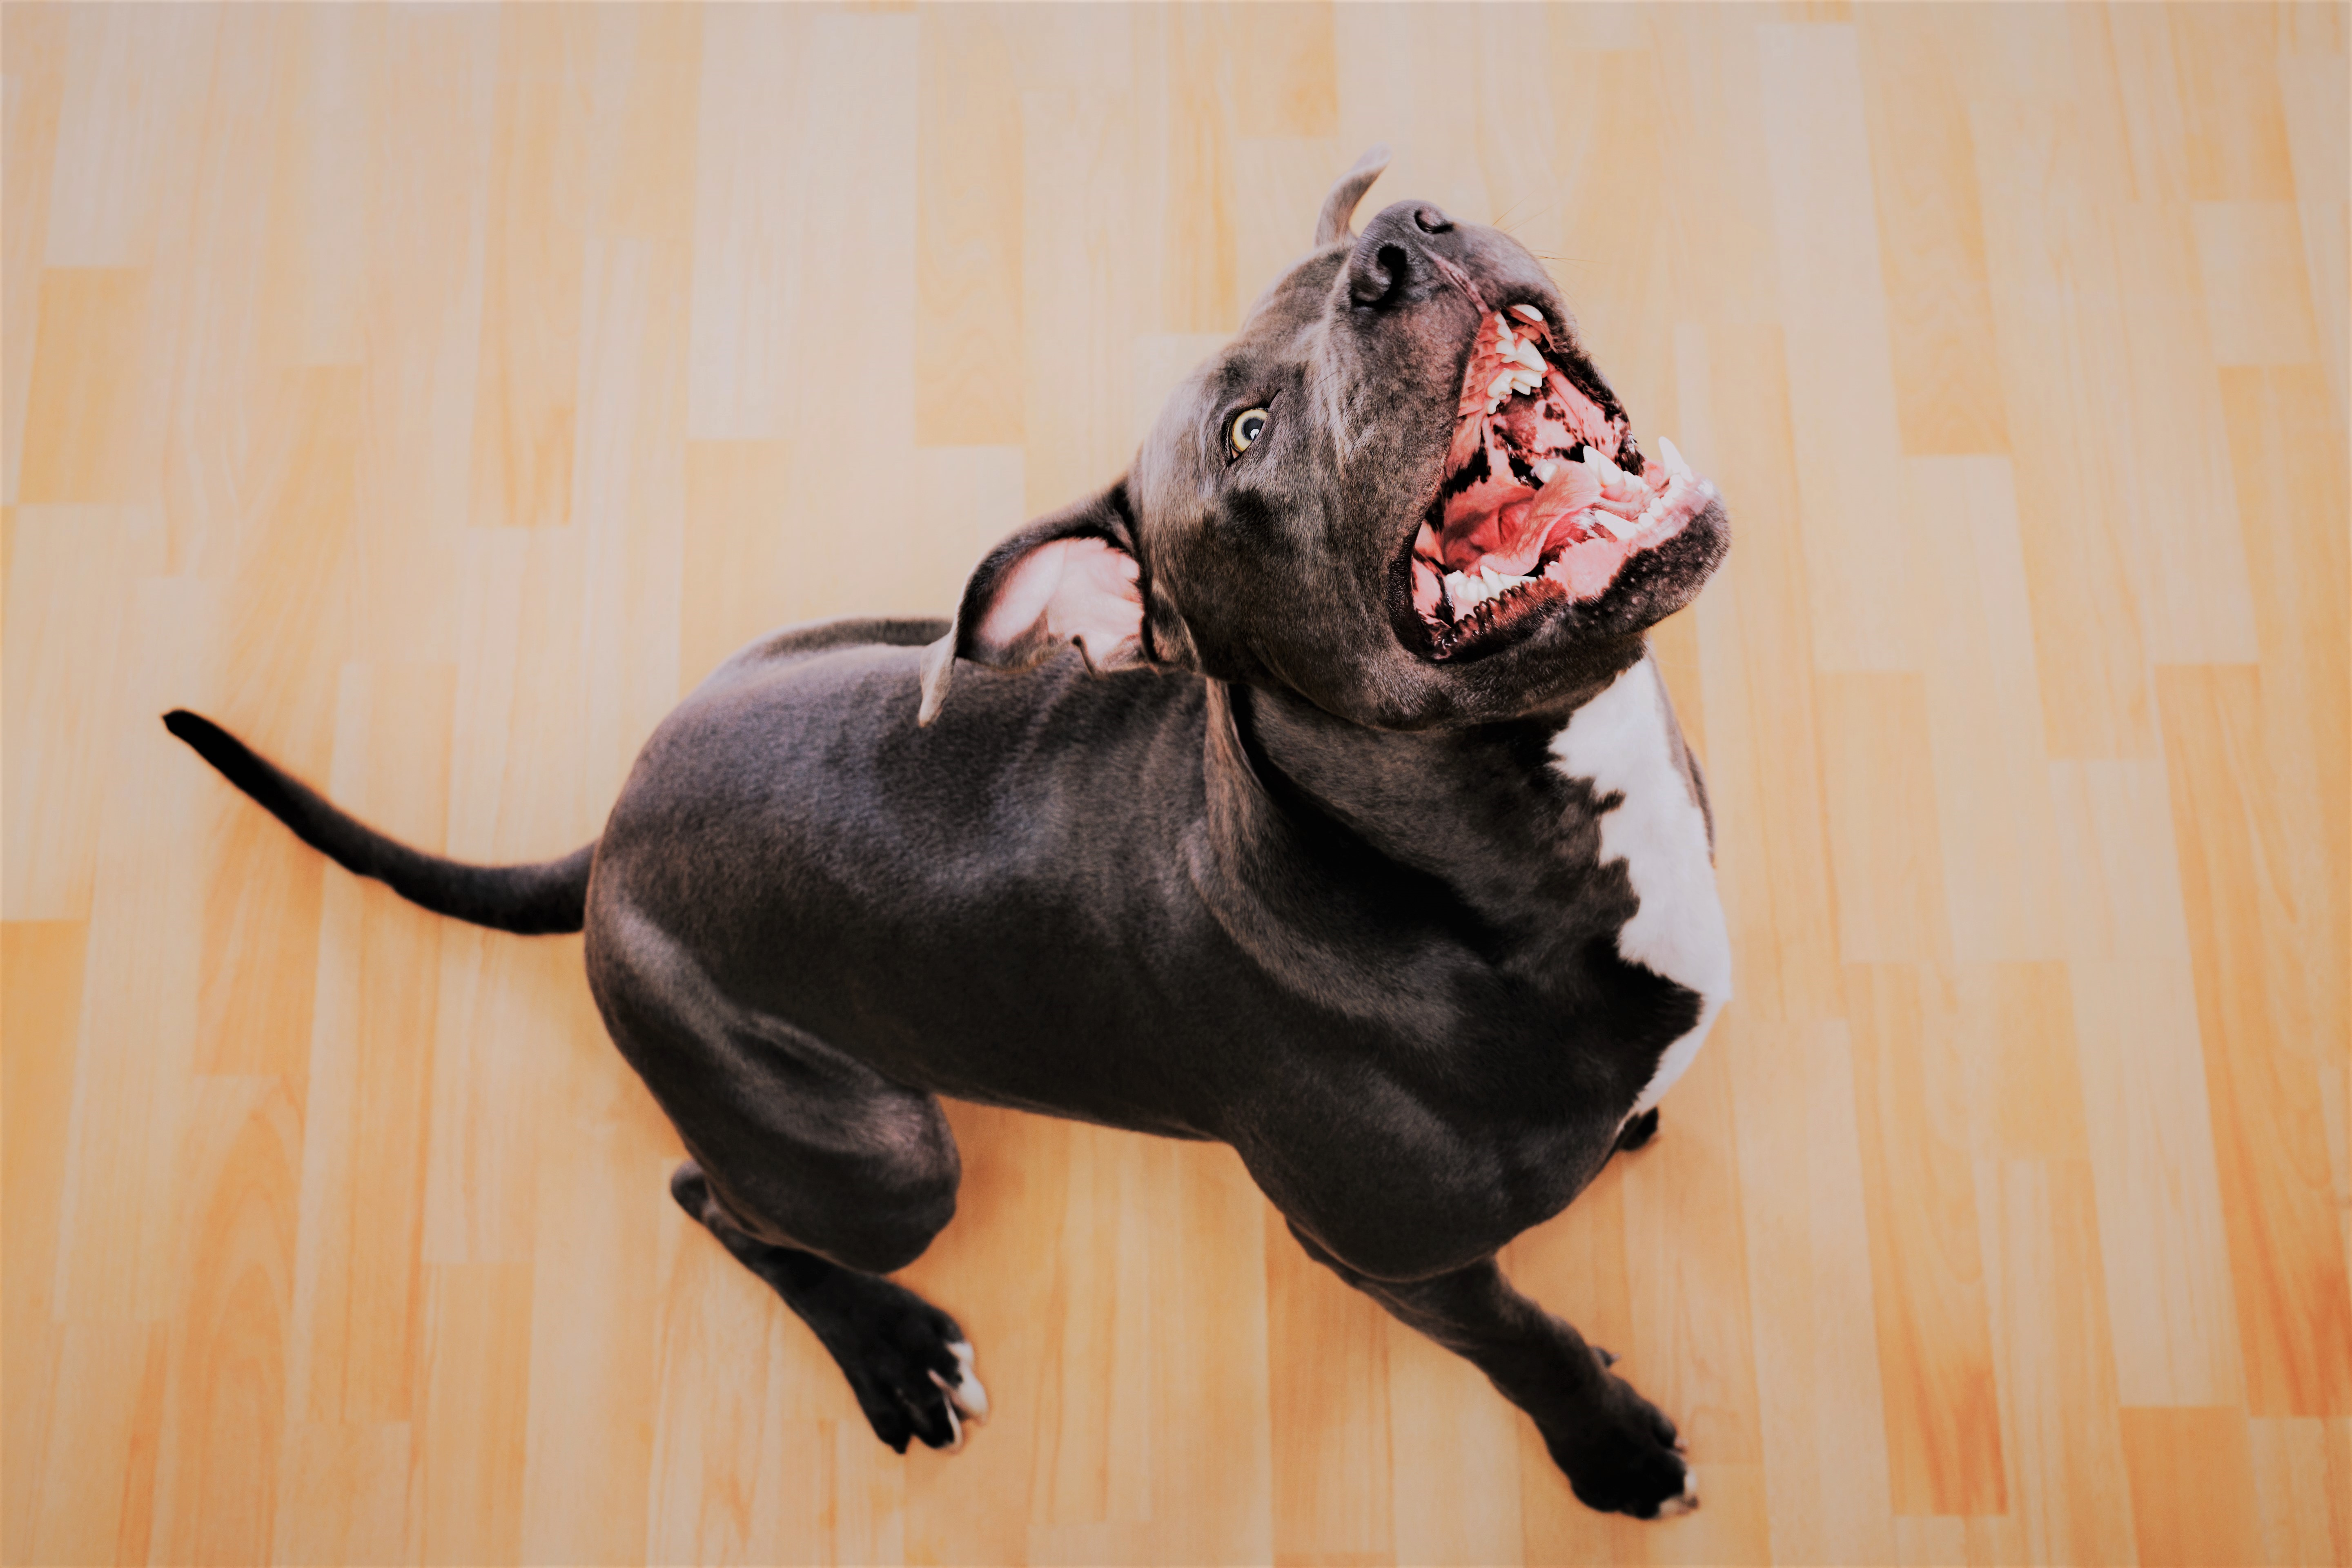 Black pit bull dog barking